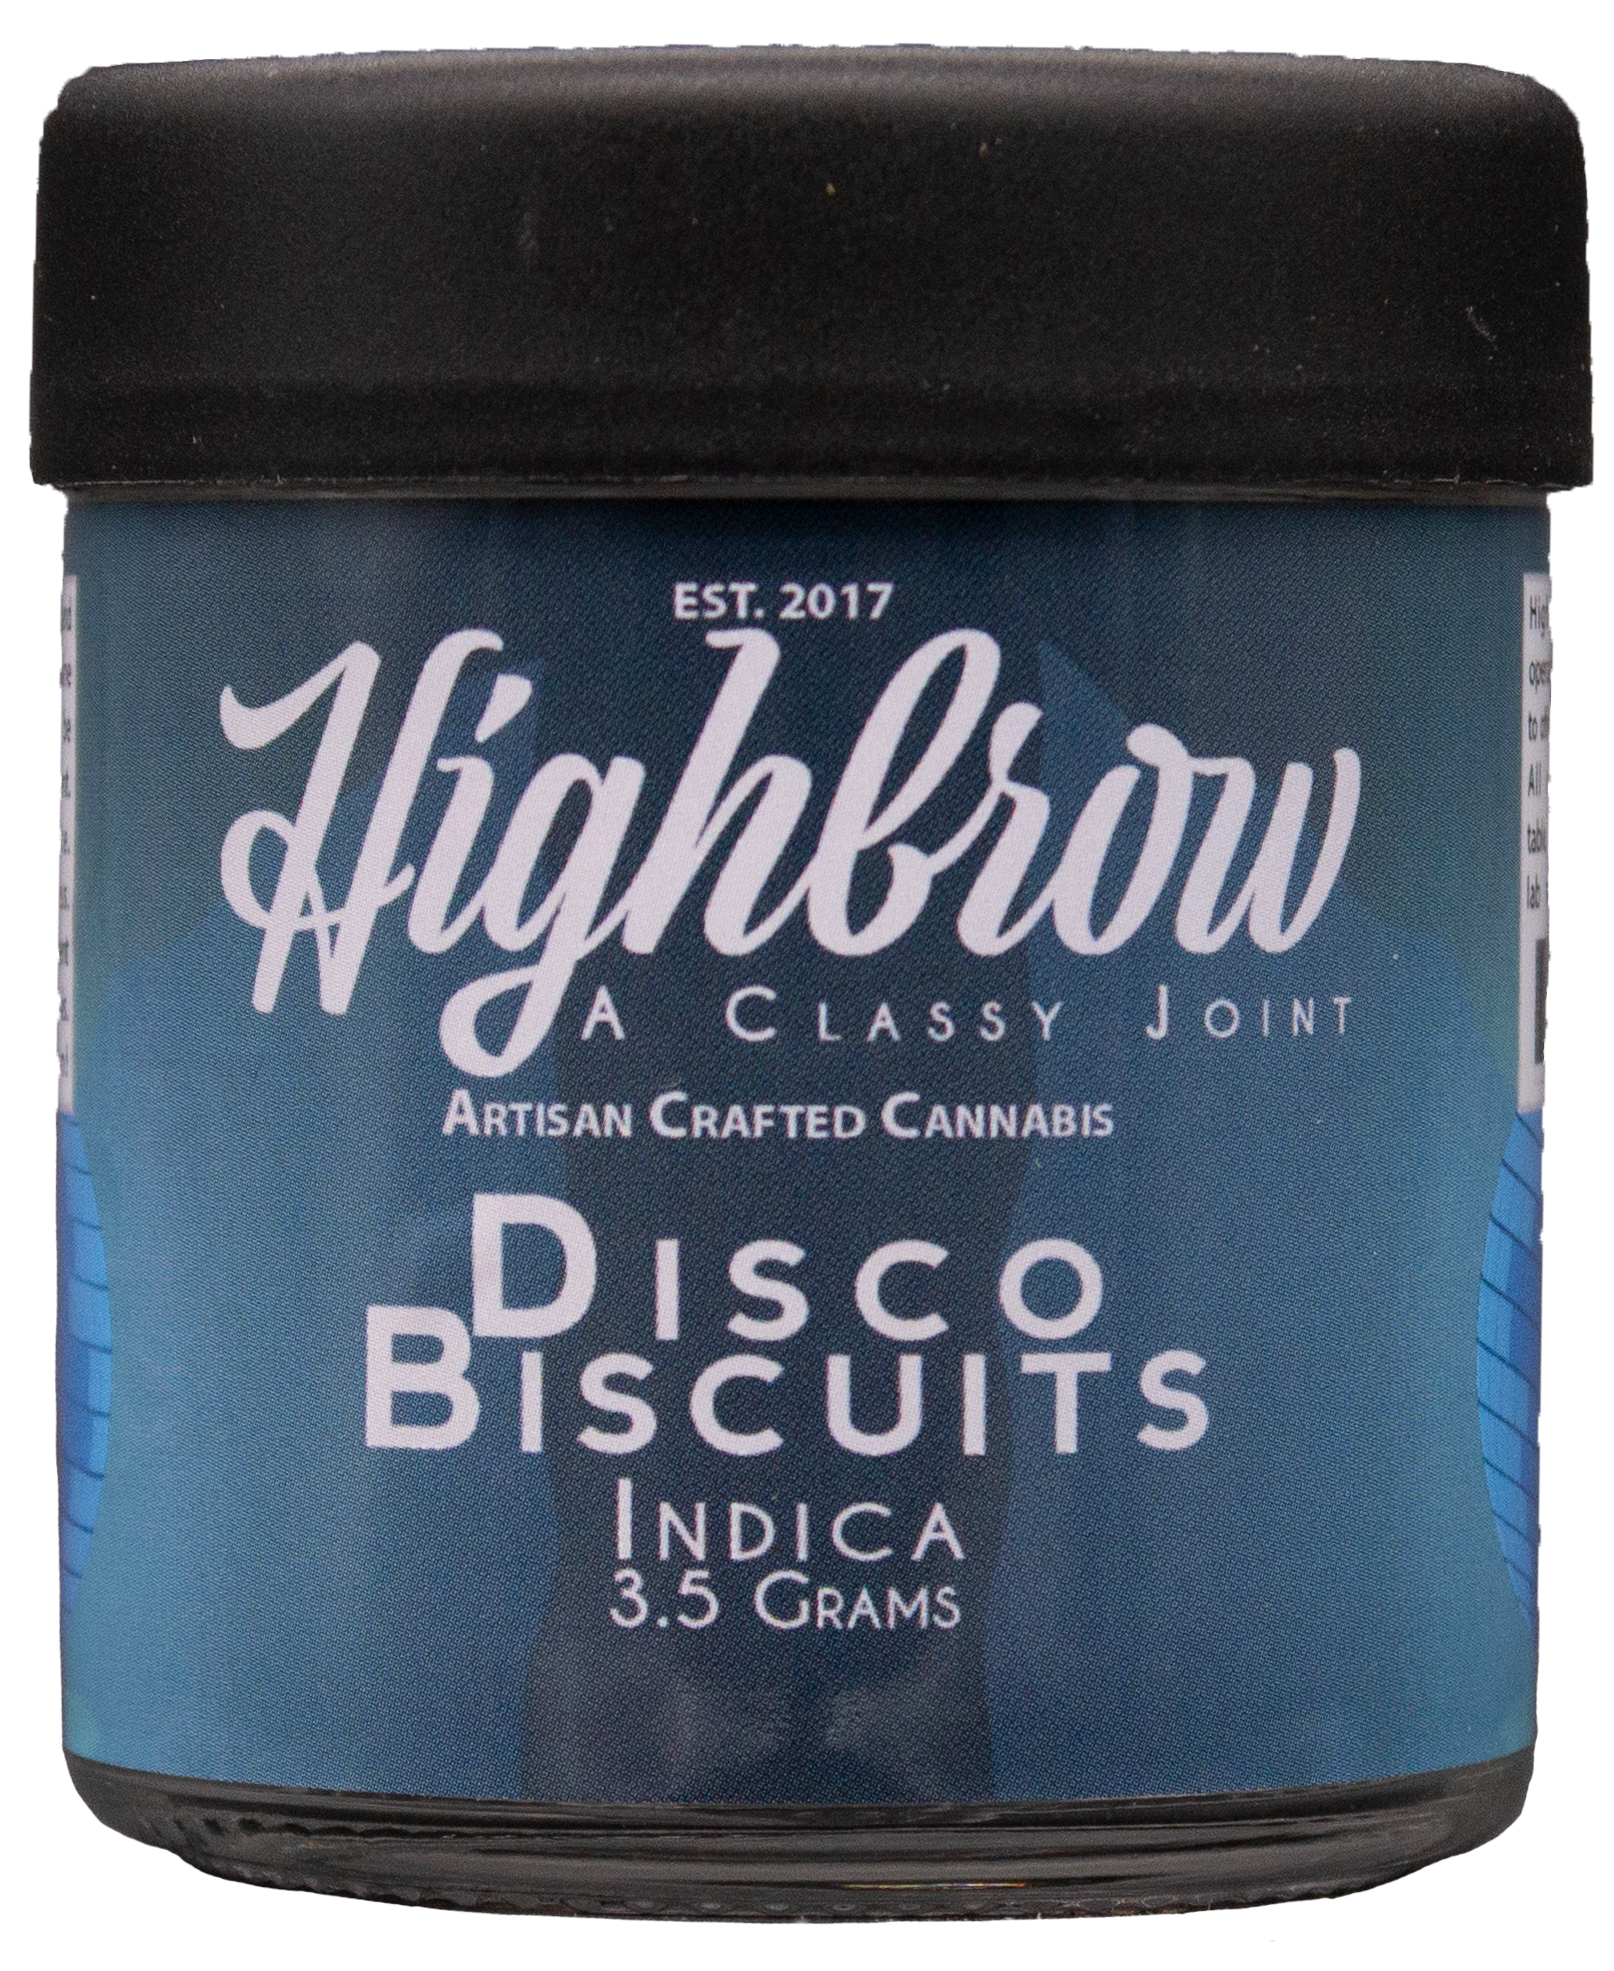 Disco Biscuits - A biscuit for the soul.